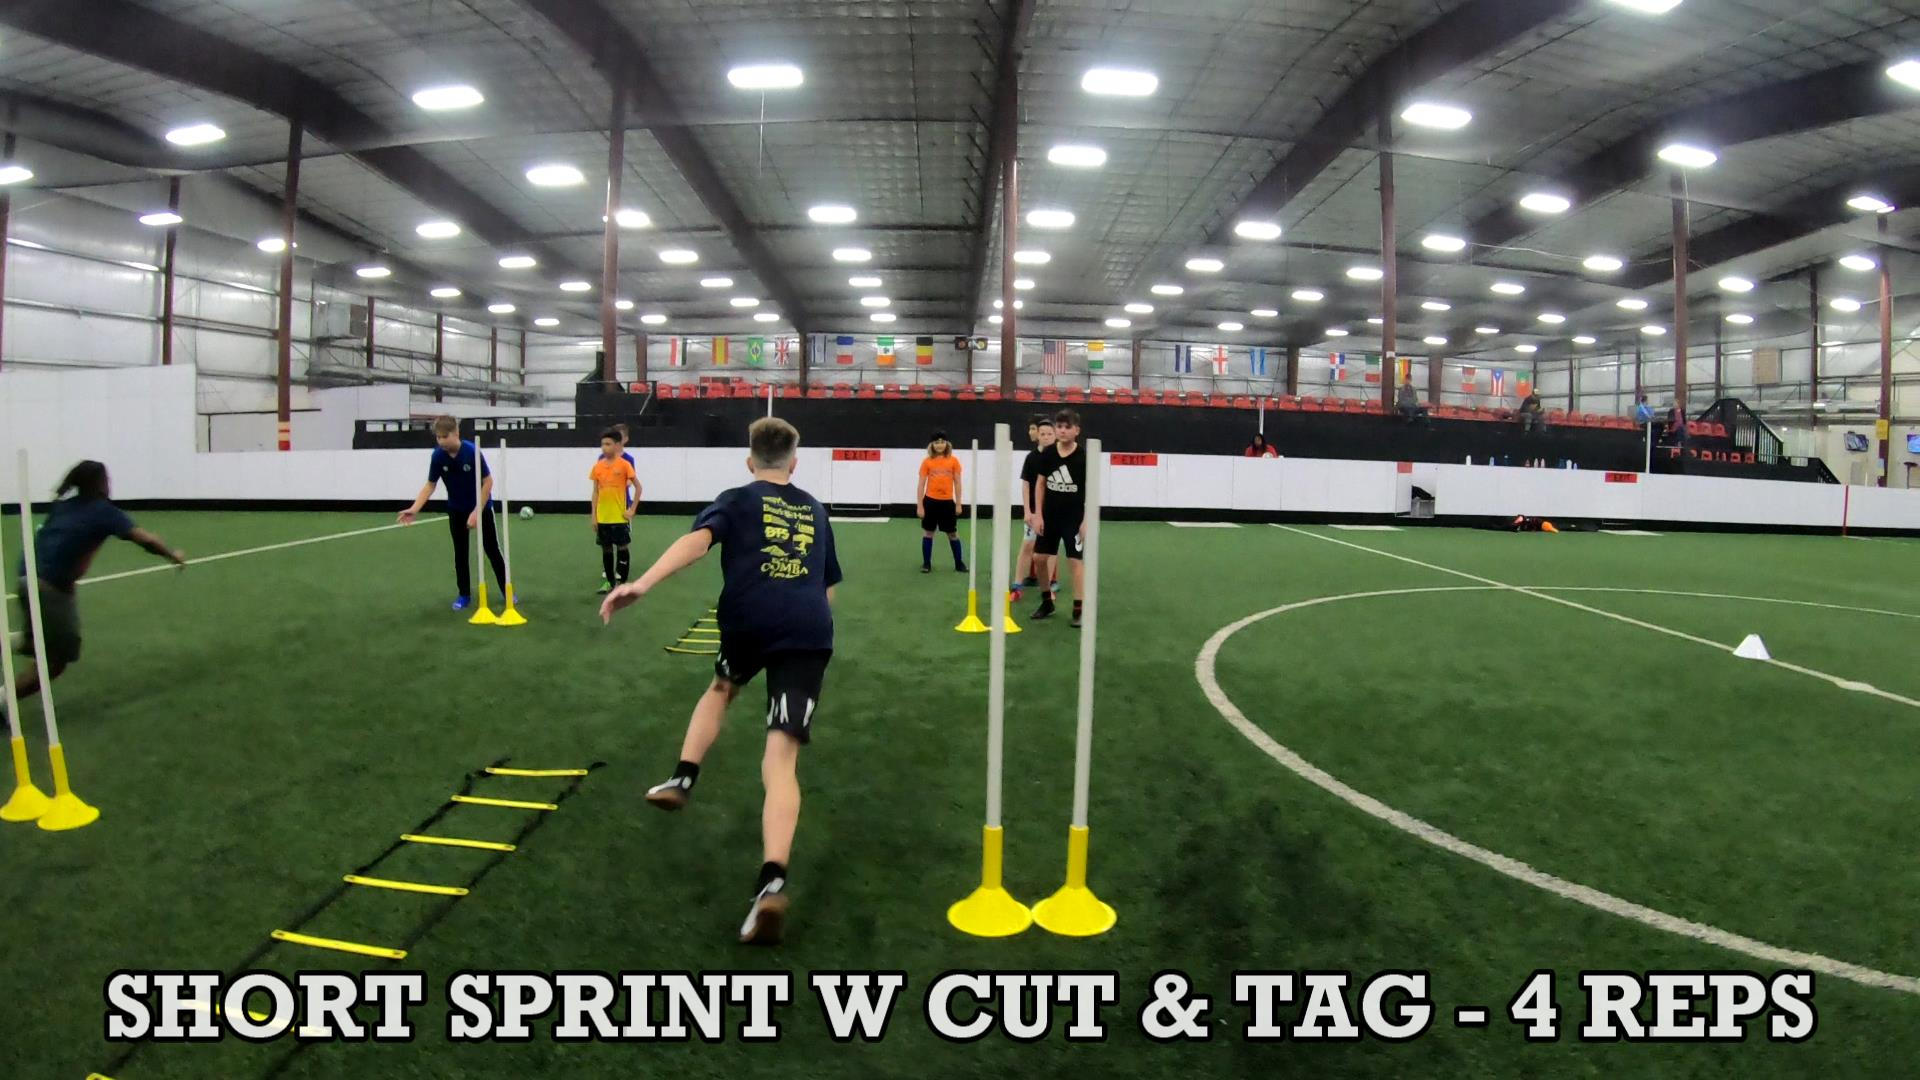 SOCCER COACHING DRILLS FOR KIDS 5